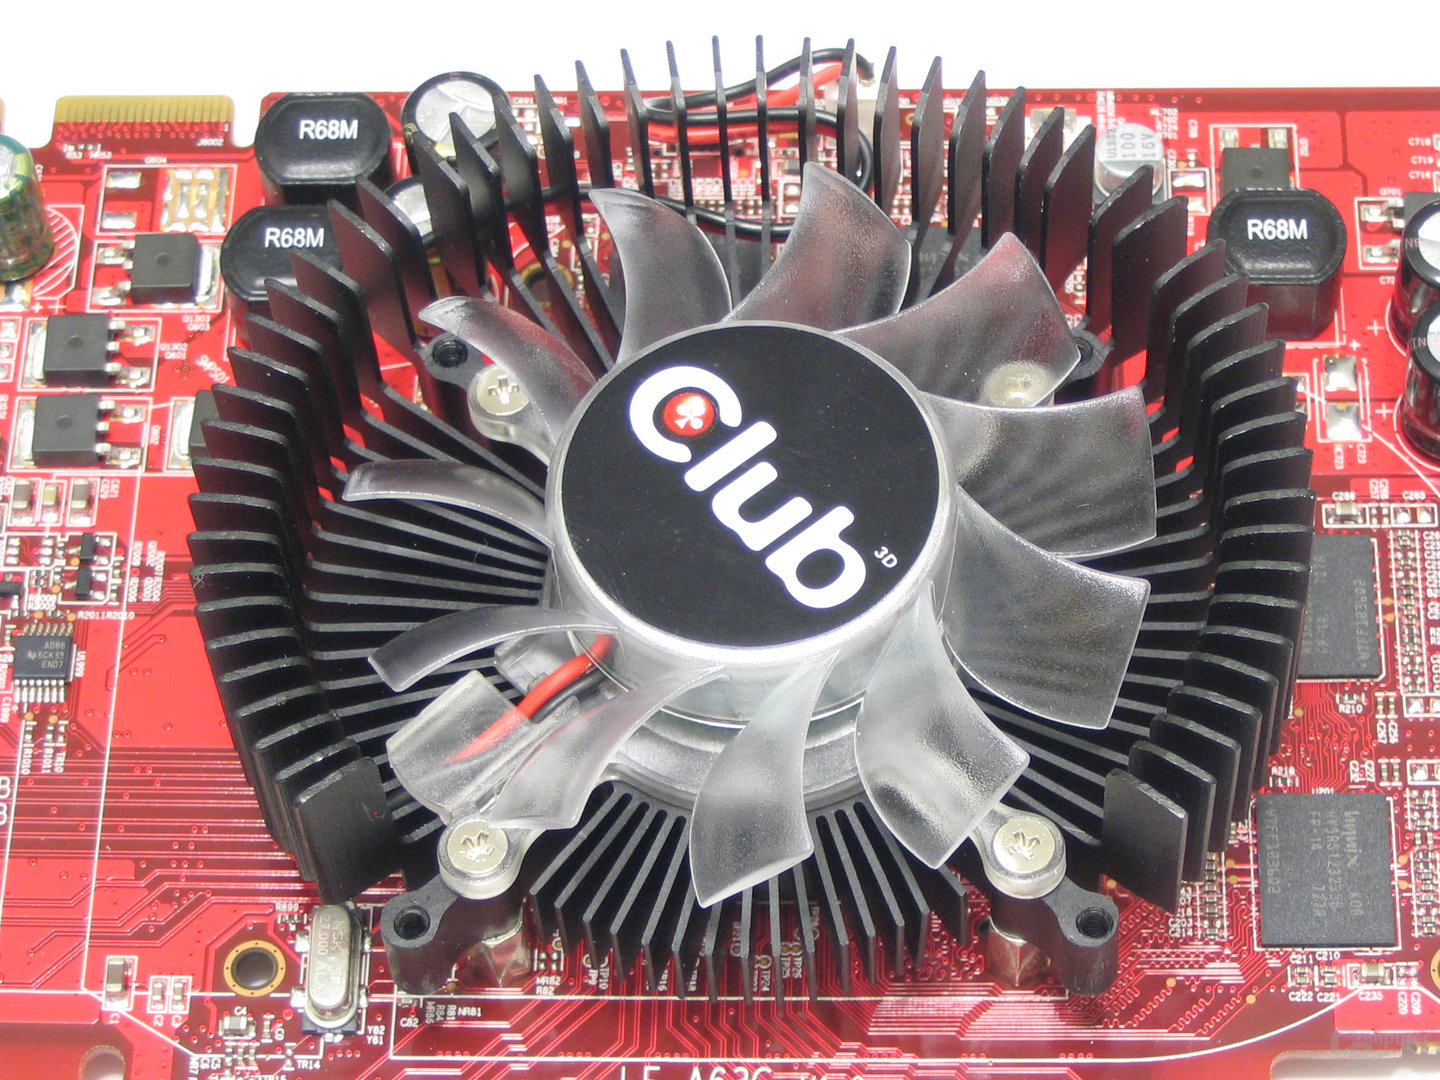 Club3D Radeon HD 2600 XT Luefter